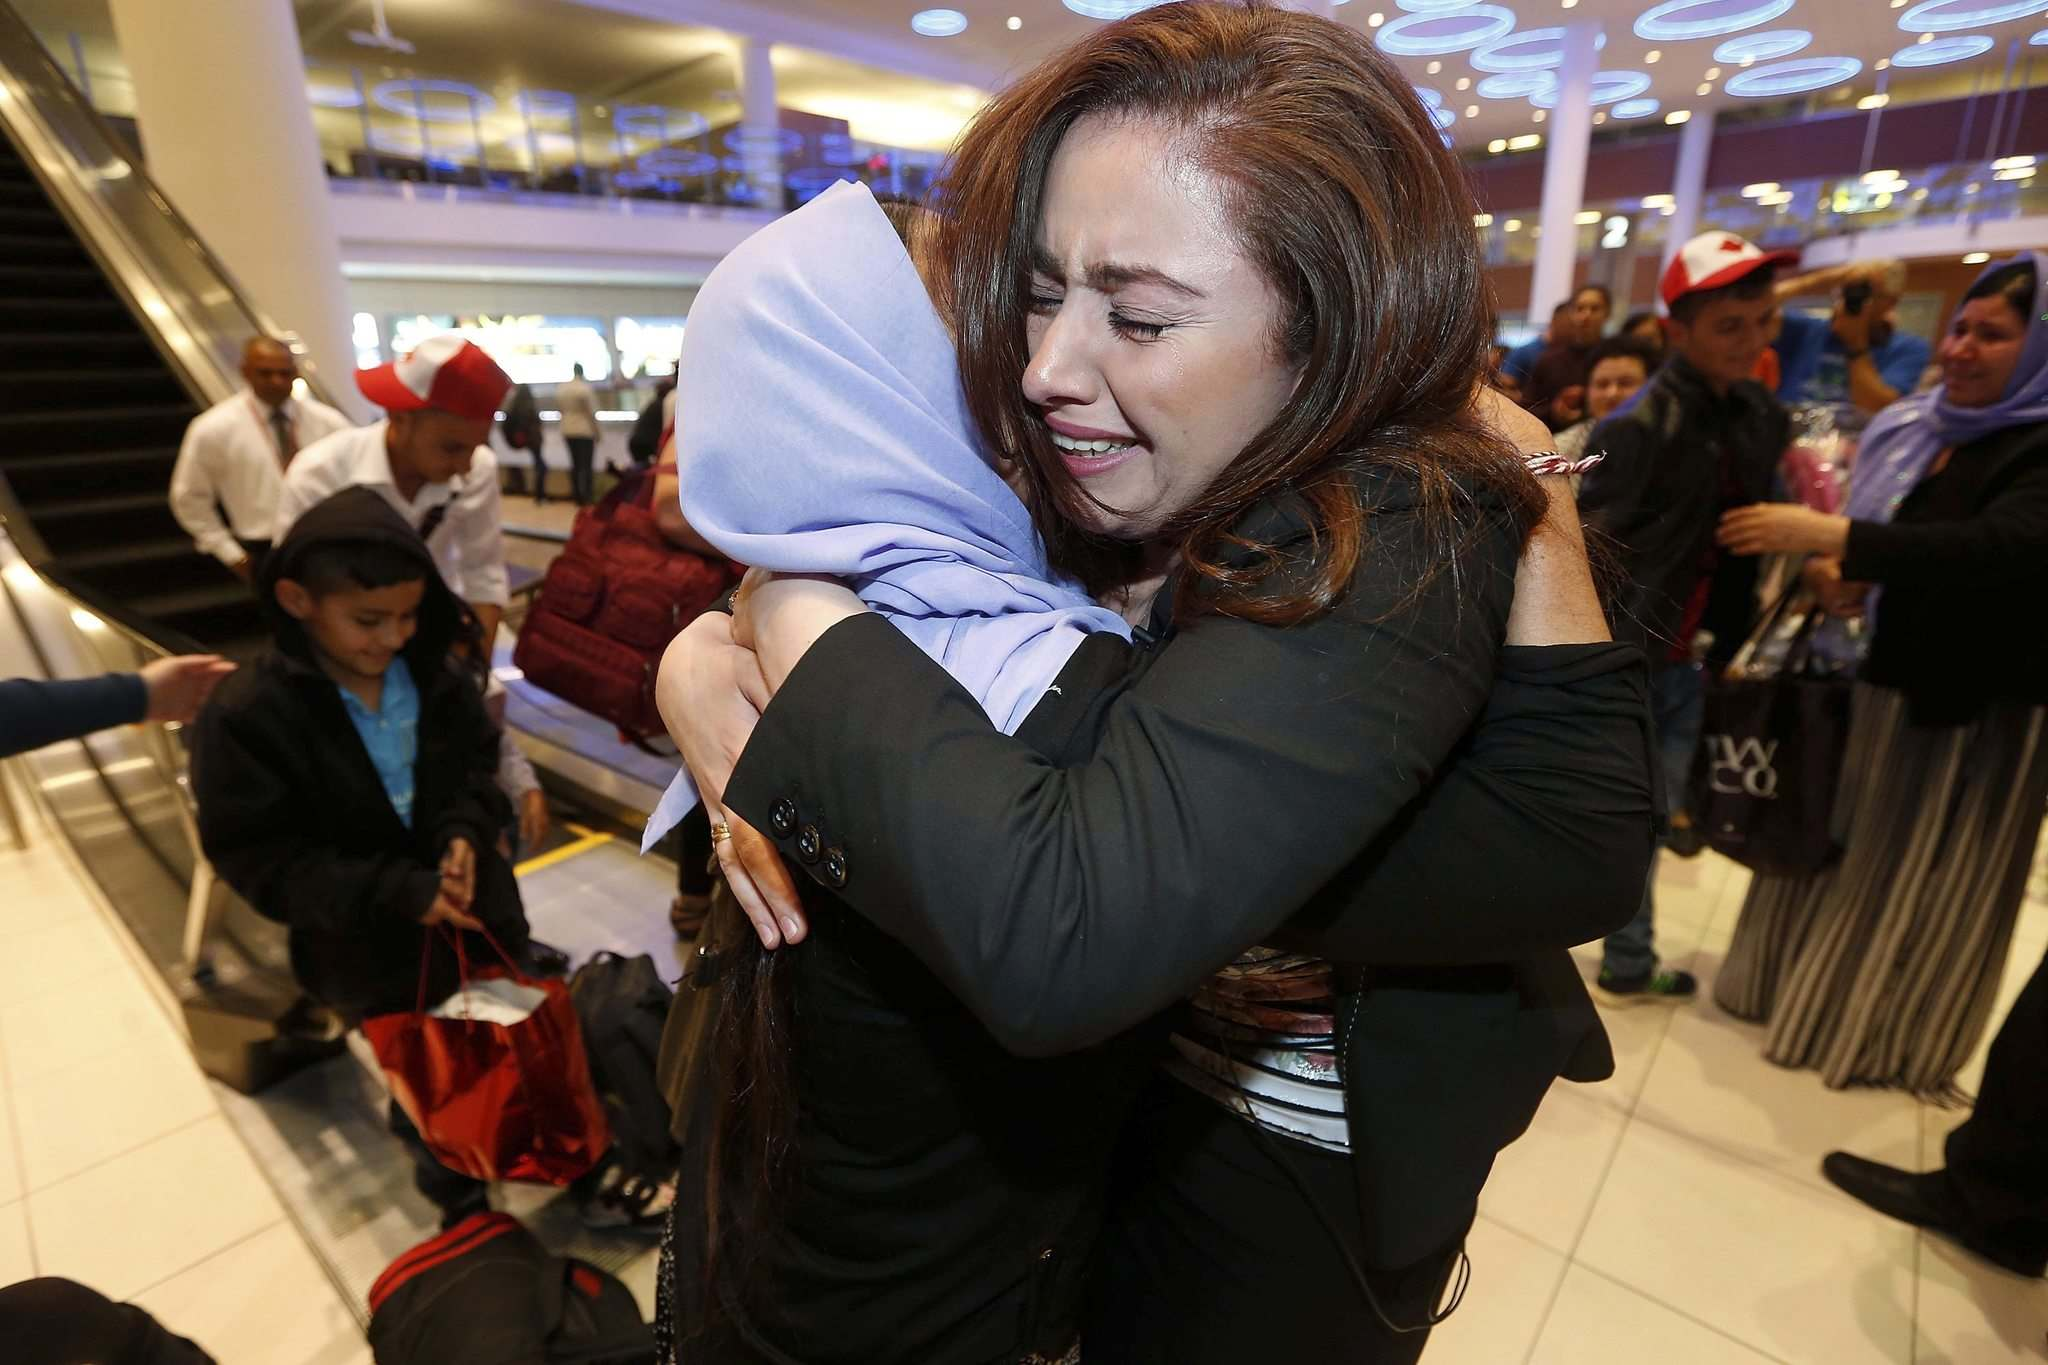 JOHN WOODS / WINNIPEG FREE PRESS FILES</p><p>Nafiyo Naso welcomes relatives at Richardson International Airport last year. Several of the first Yazidi refugees to arrive in Winnipeg under Operation Ezra were related to Naso. </p>